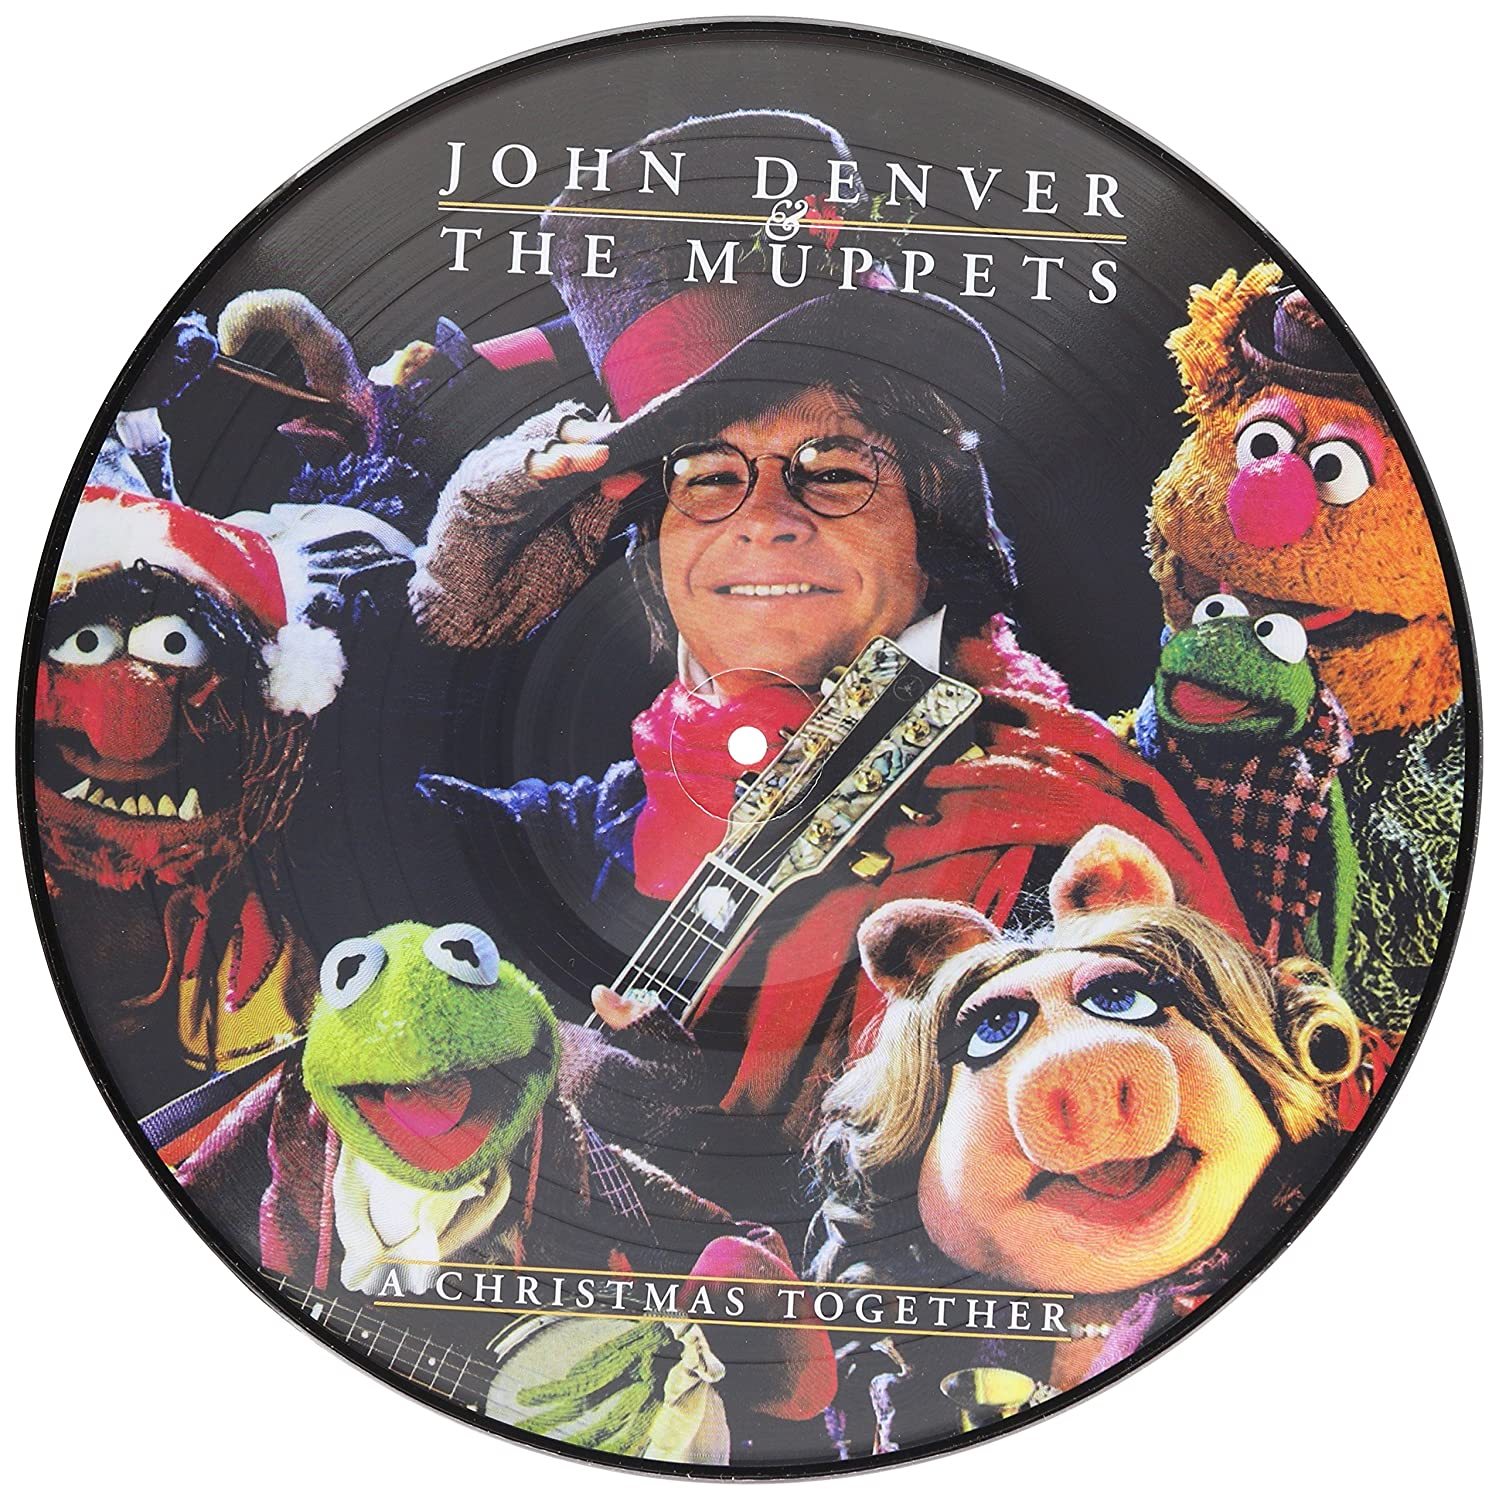 John Denver & The Muppets - A Christmas Together [Picture Disc ...